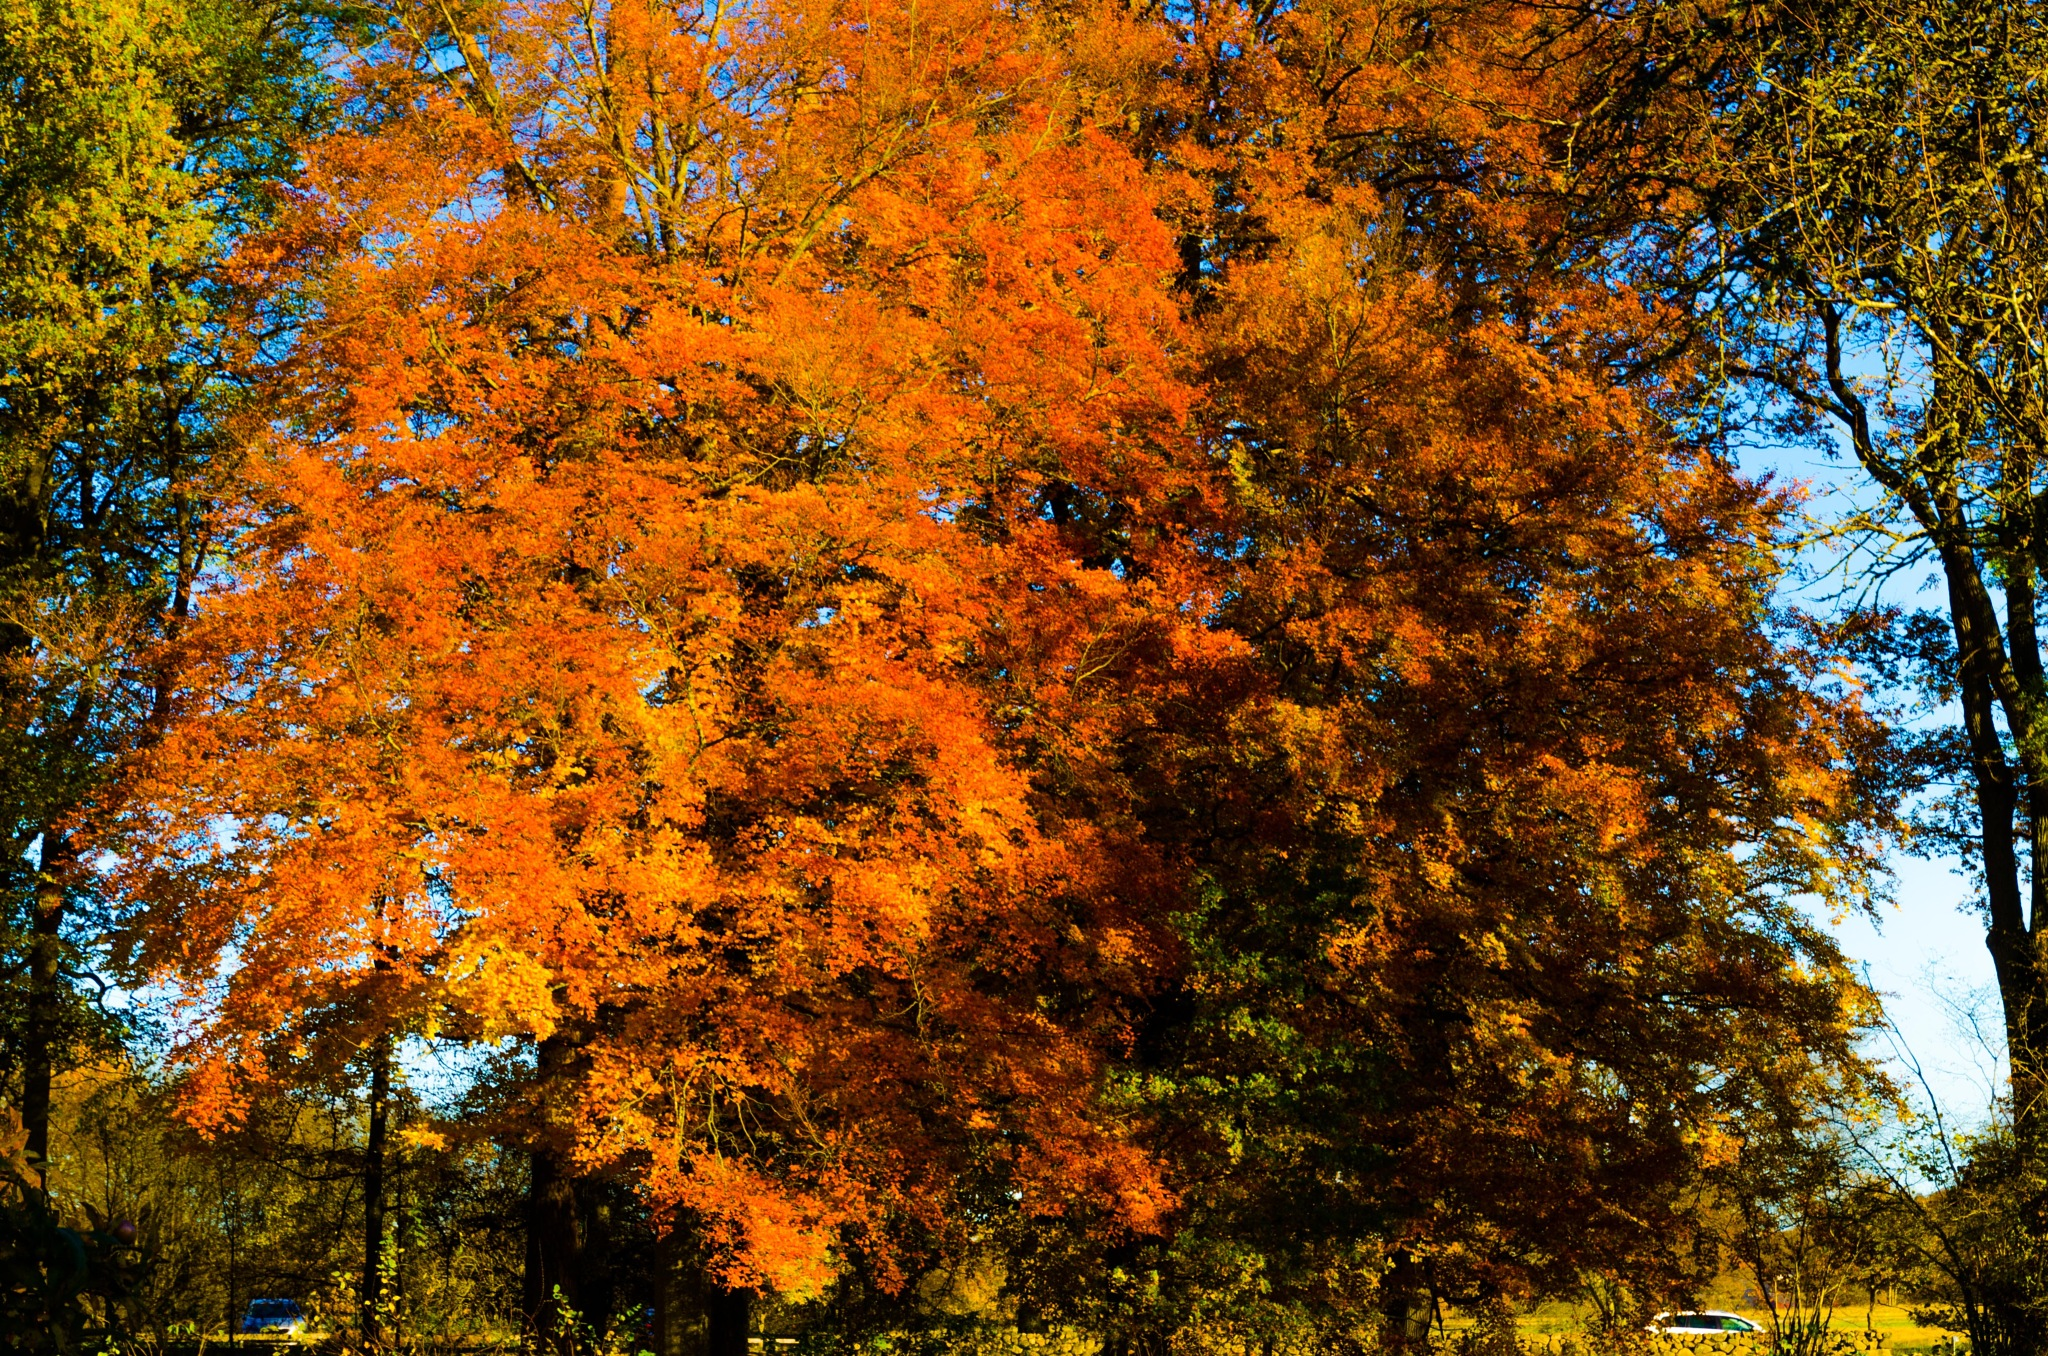 Autumn colors by Johnny Lythell